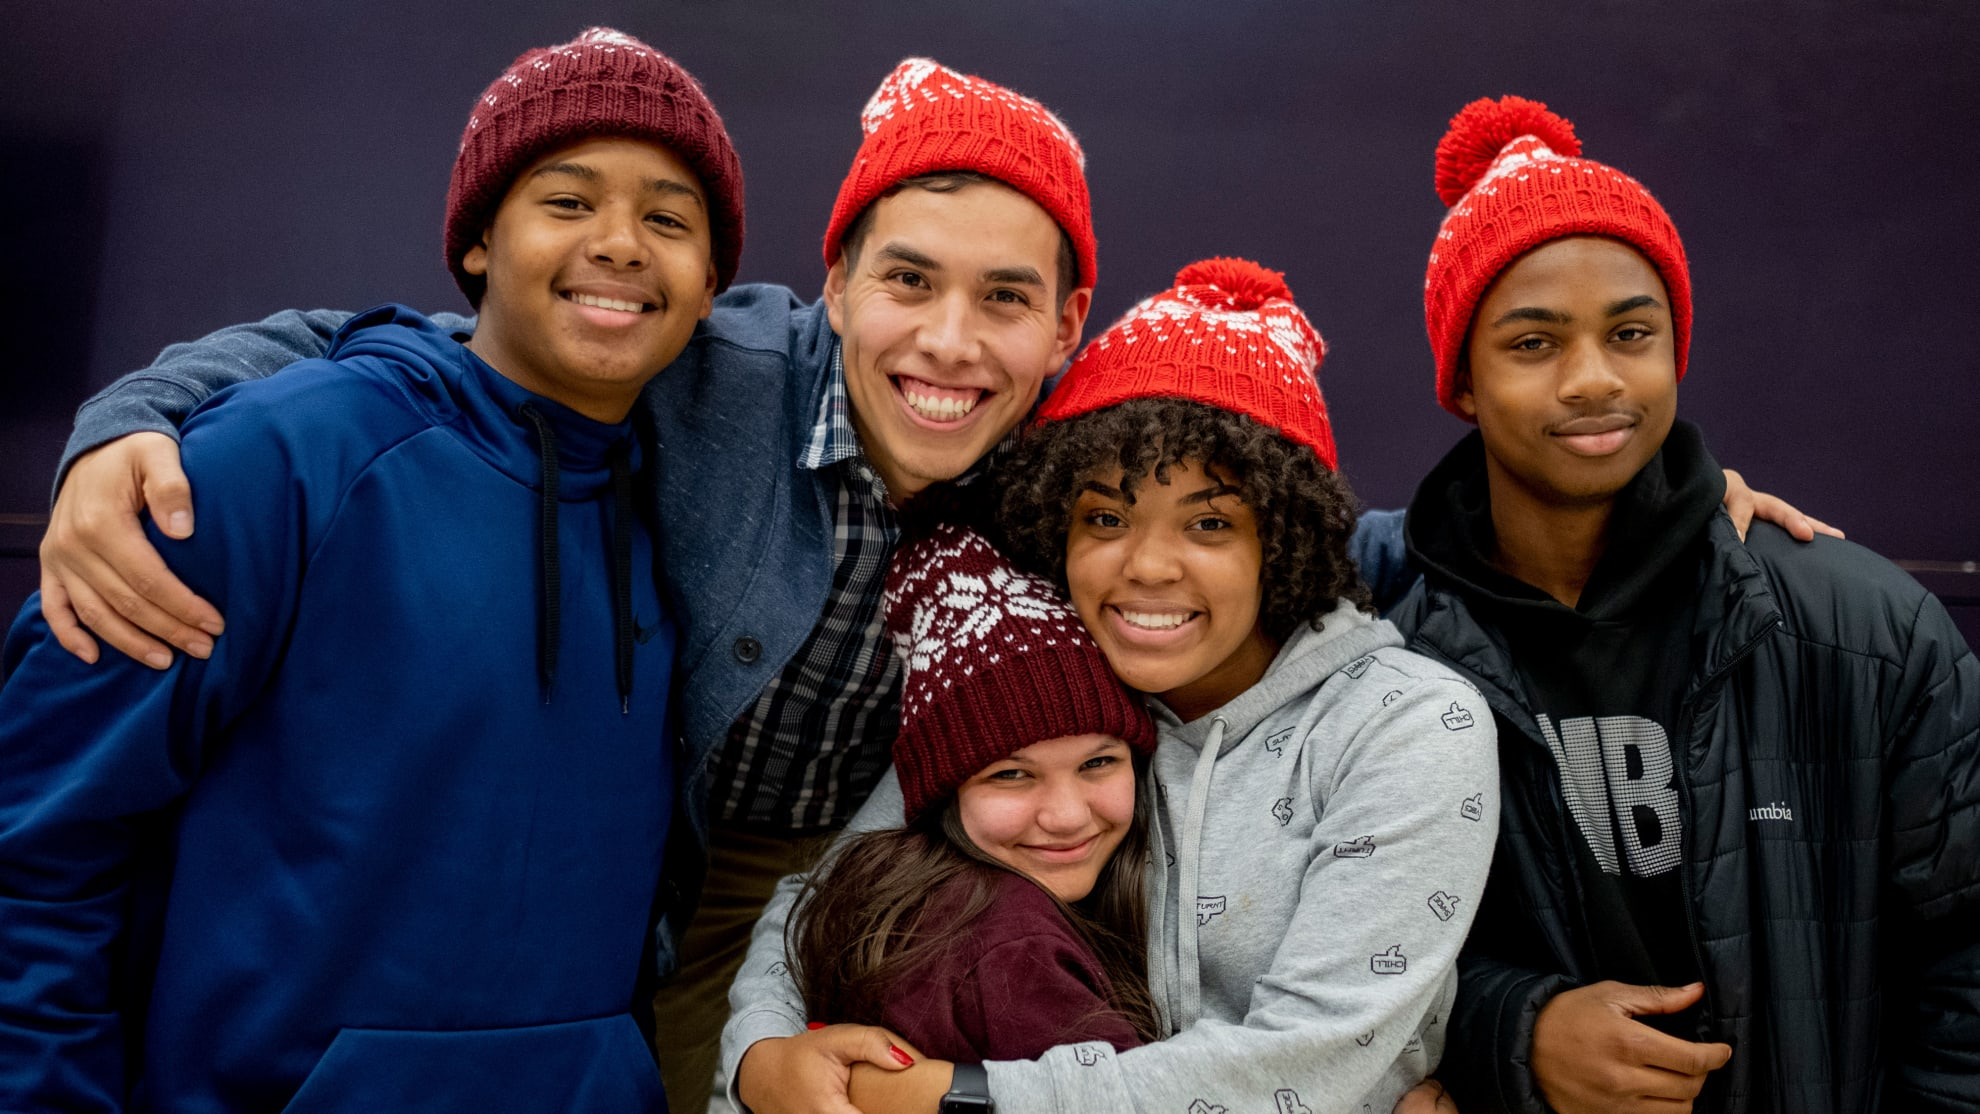 a teacher and students wearing hats and smiling for a picture